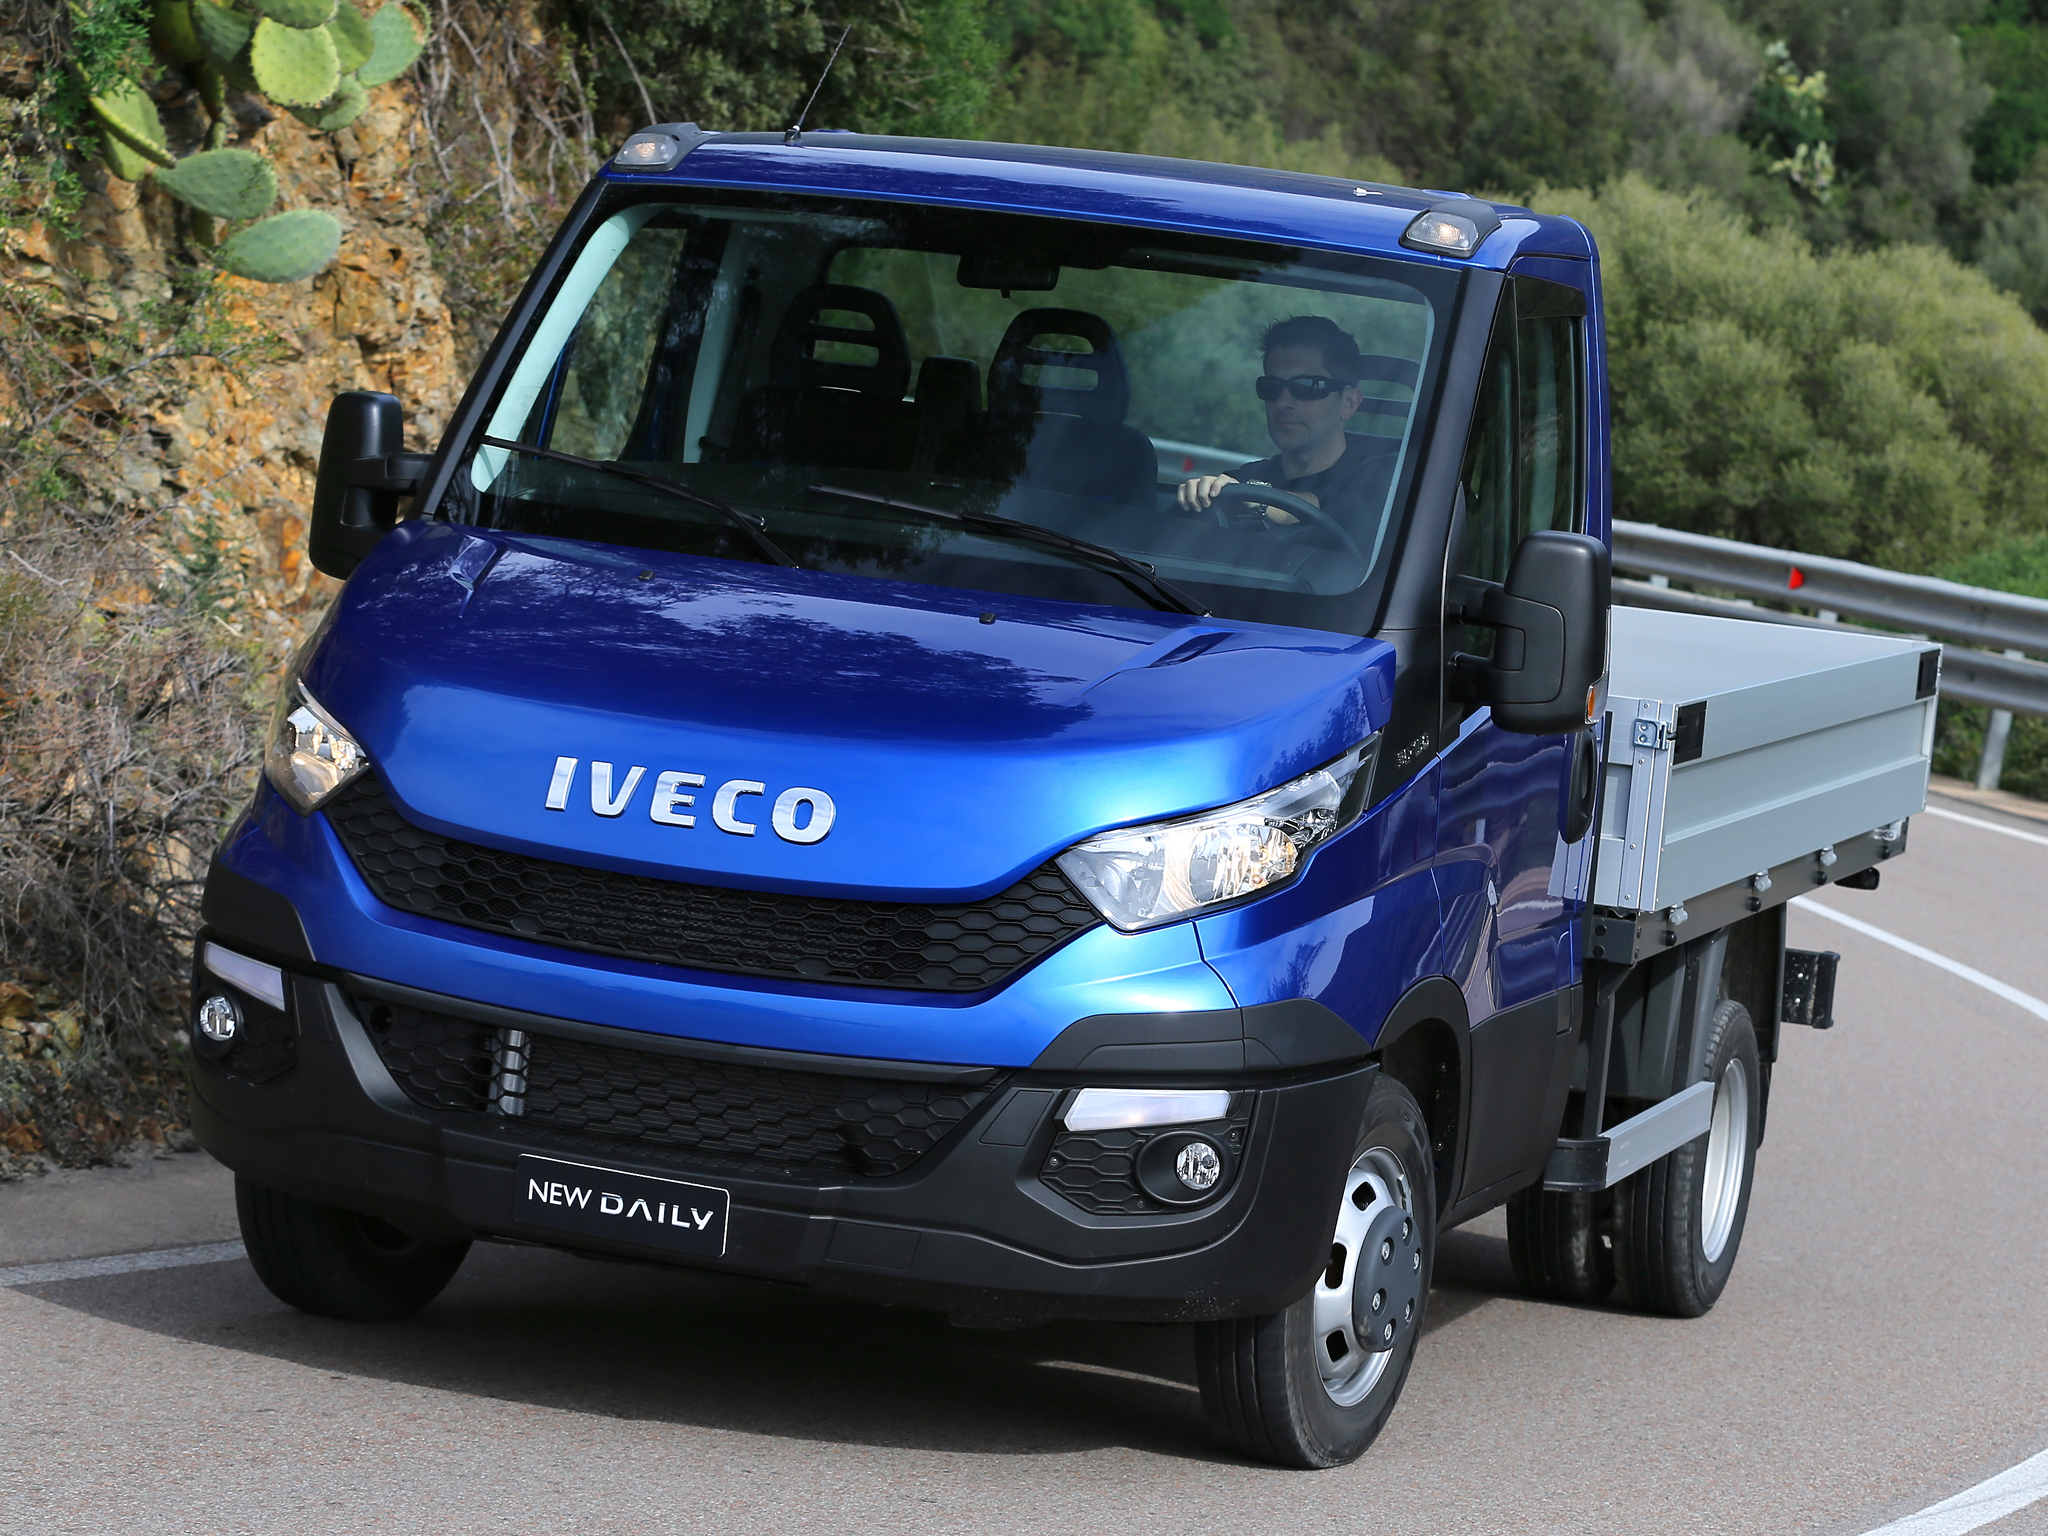 Nissan 2016 Maxima New Iveco Daily Range Coming to the UK in November 2011 ...